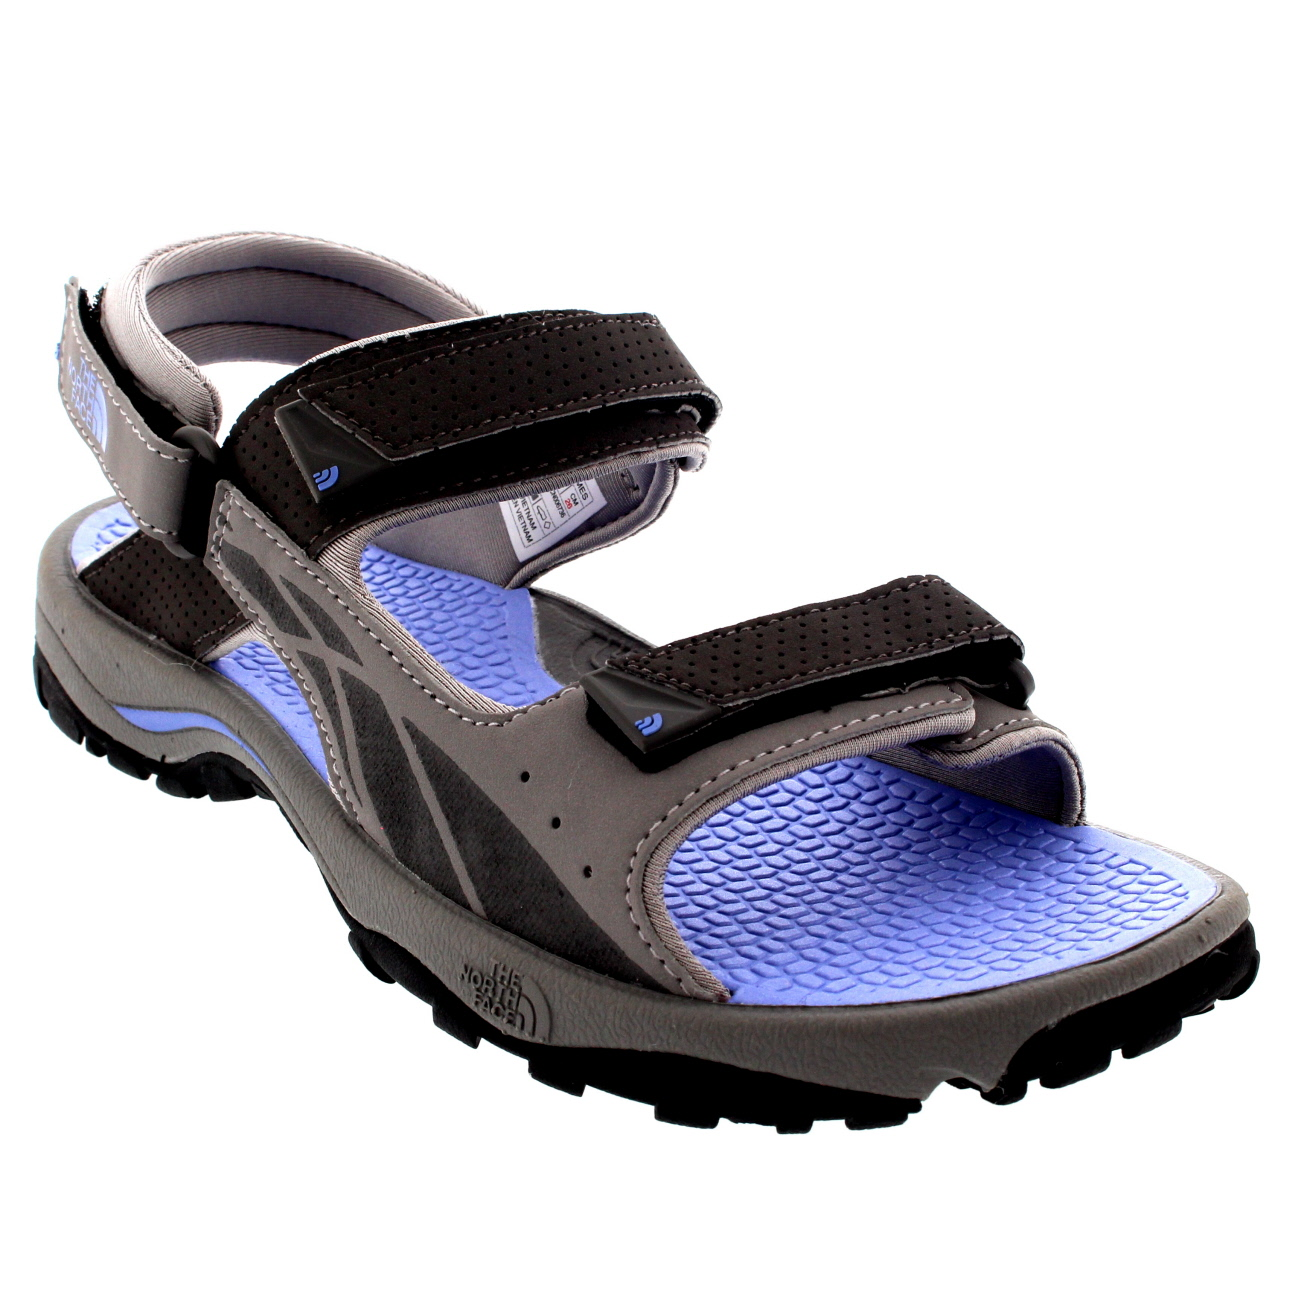 The North Face Storm Sandal